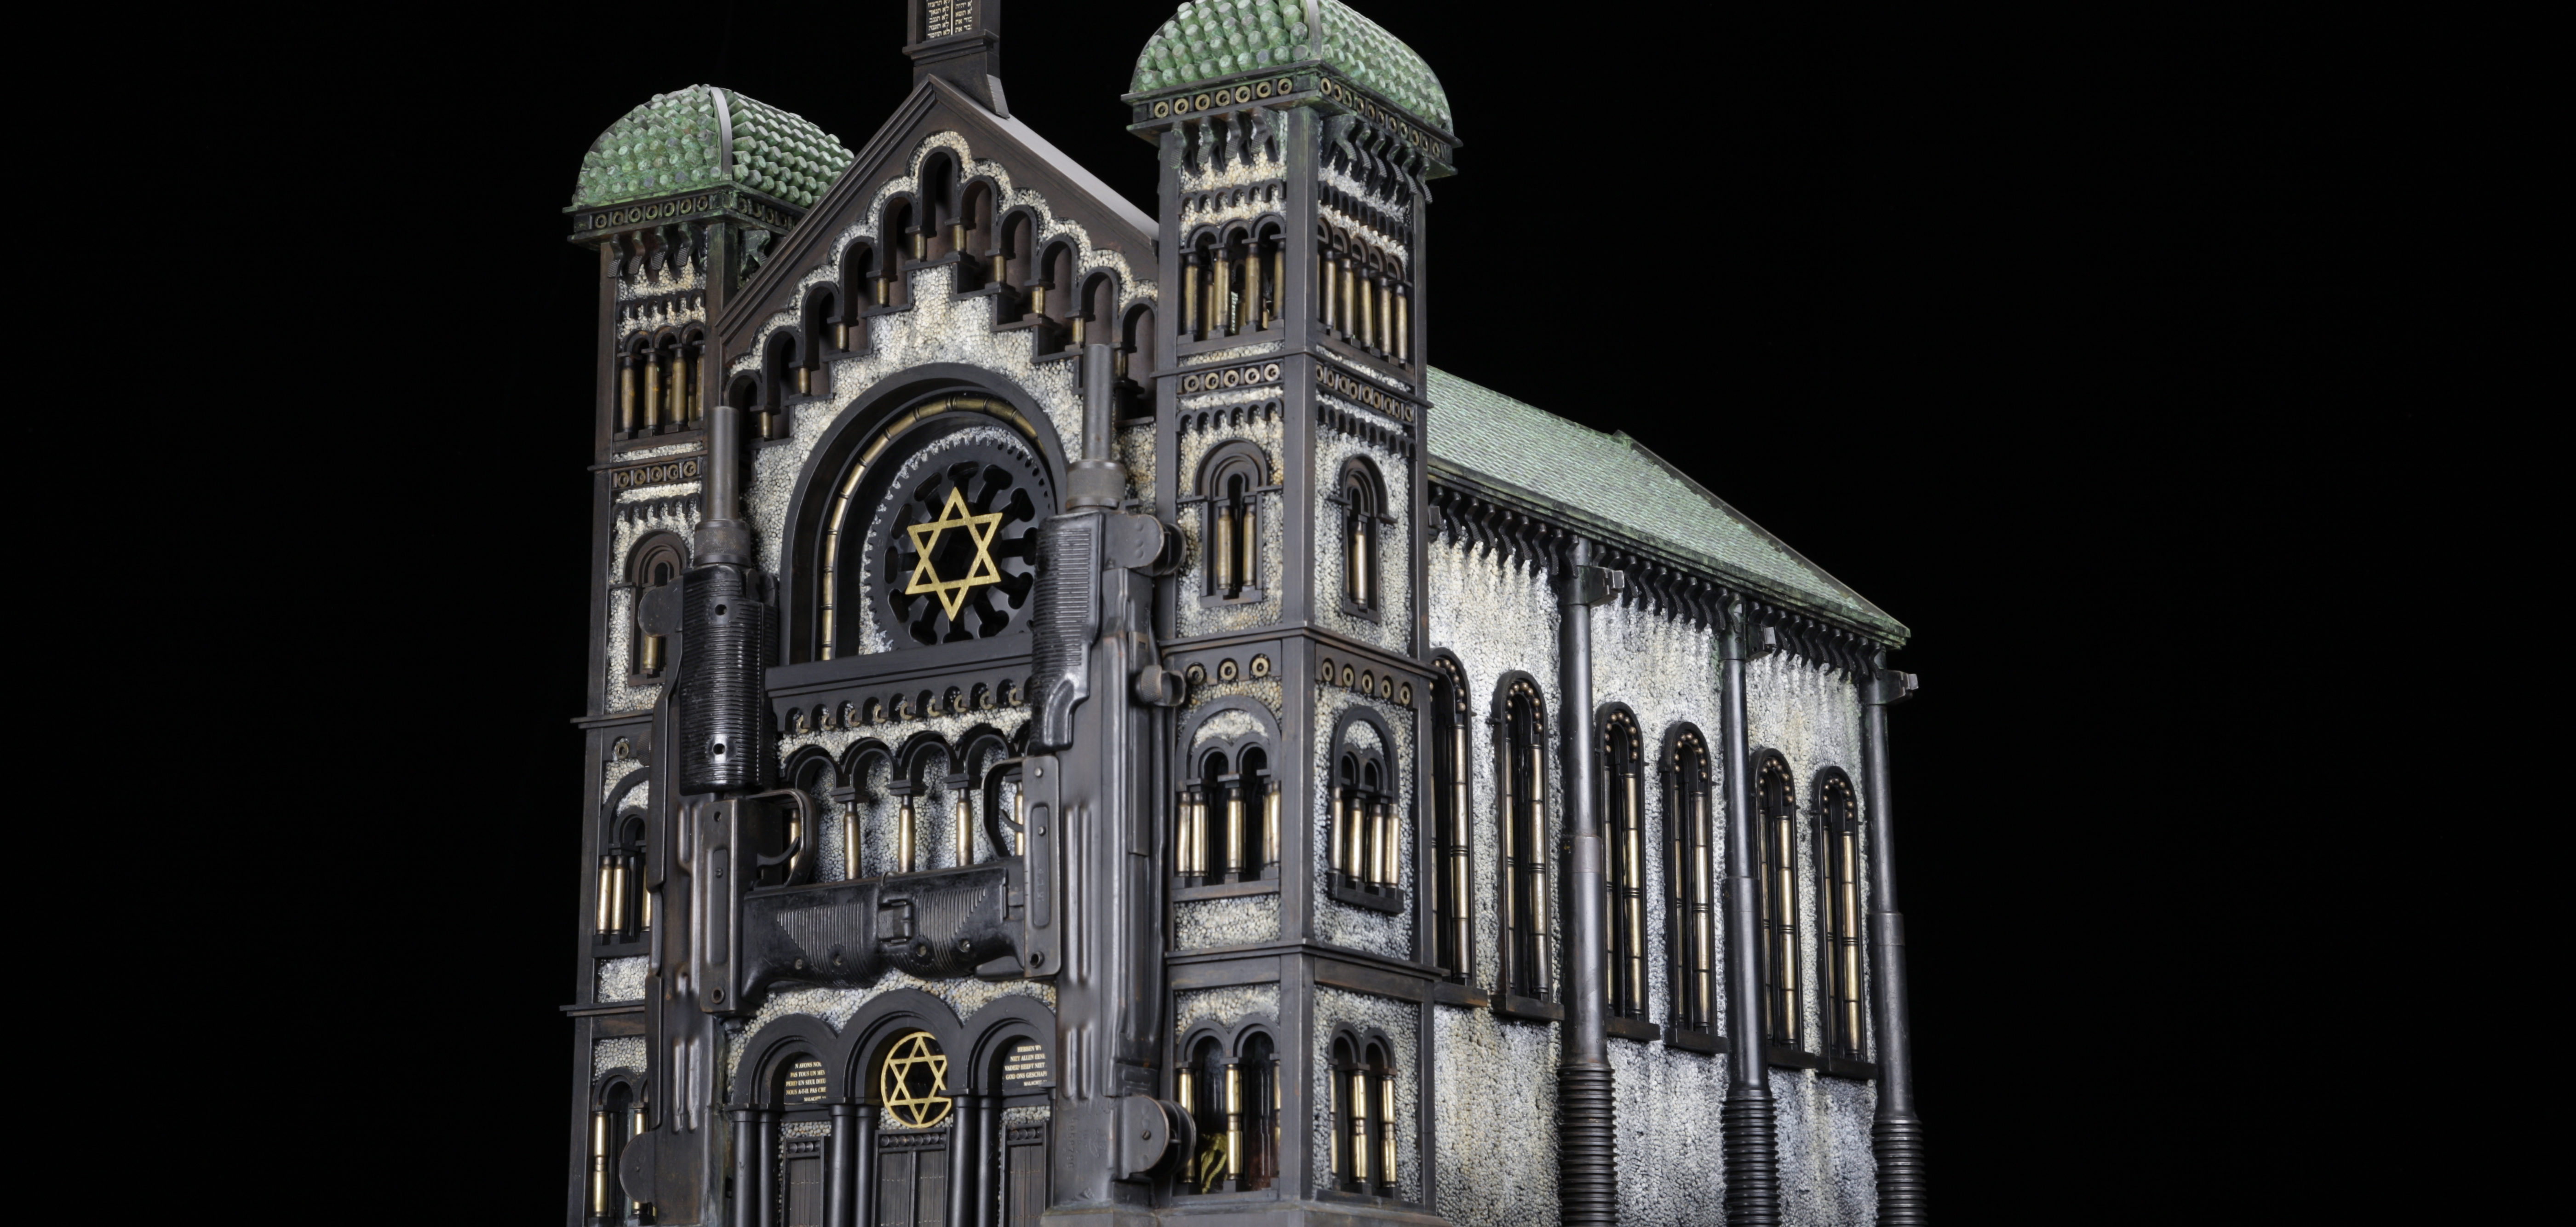 Farrow_Synagogue-V-after-the-Great-Synagogue-of-Brussels-2012_001_press-e1498669344247.jpg